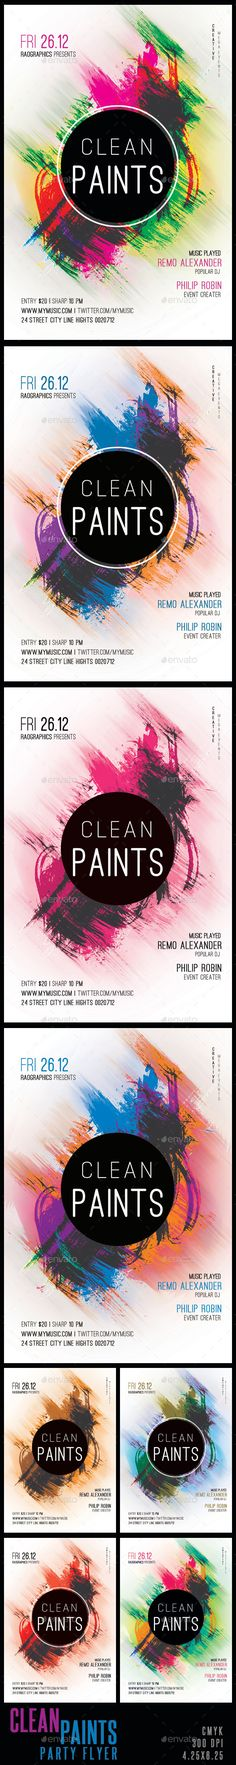 Clean Paints Party Flyer Template PSD   Buy and Download: http://graphicriver.net/item/clean-paints-party-flyer-template/9177679?WT.ac=category_thumb&WT.z_author=raographics&ref=ksioks